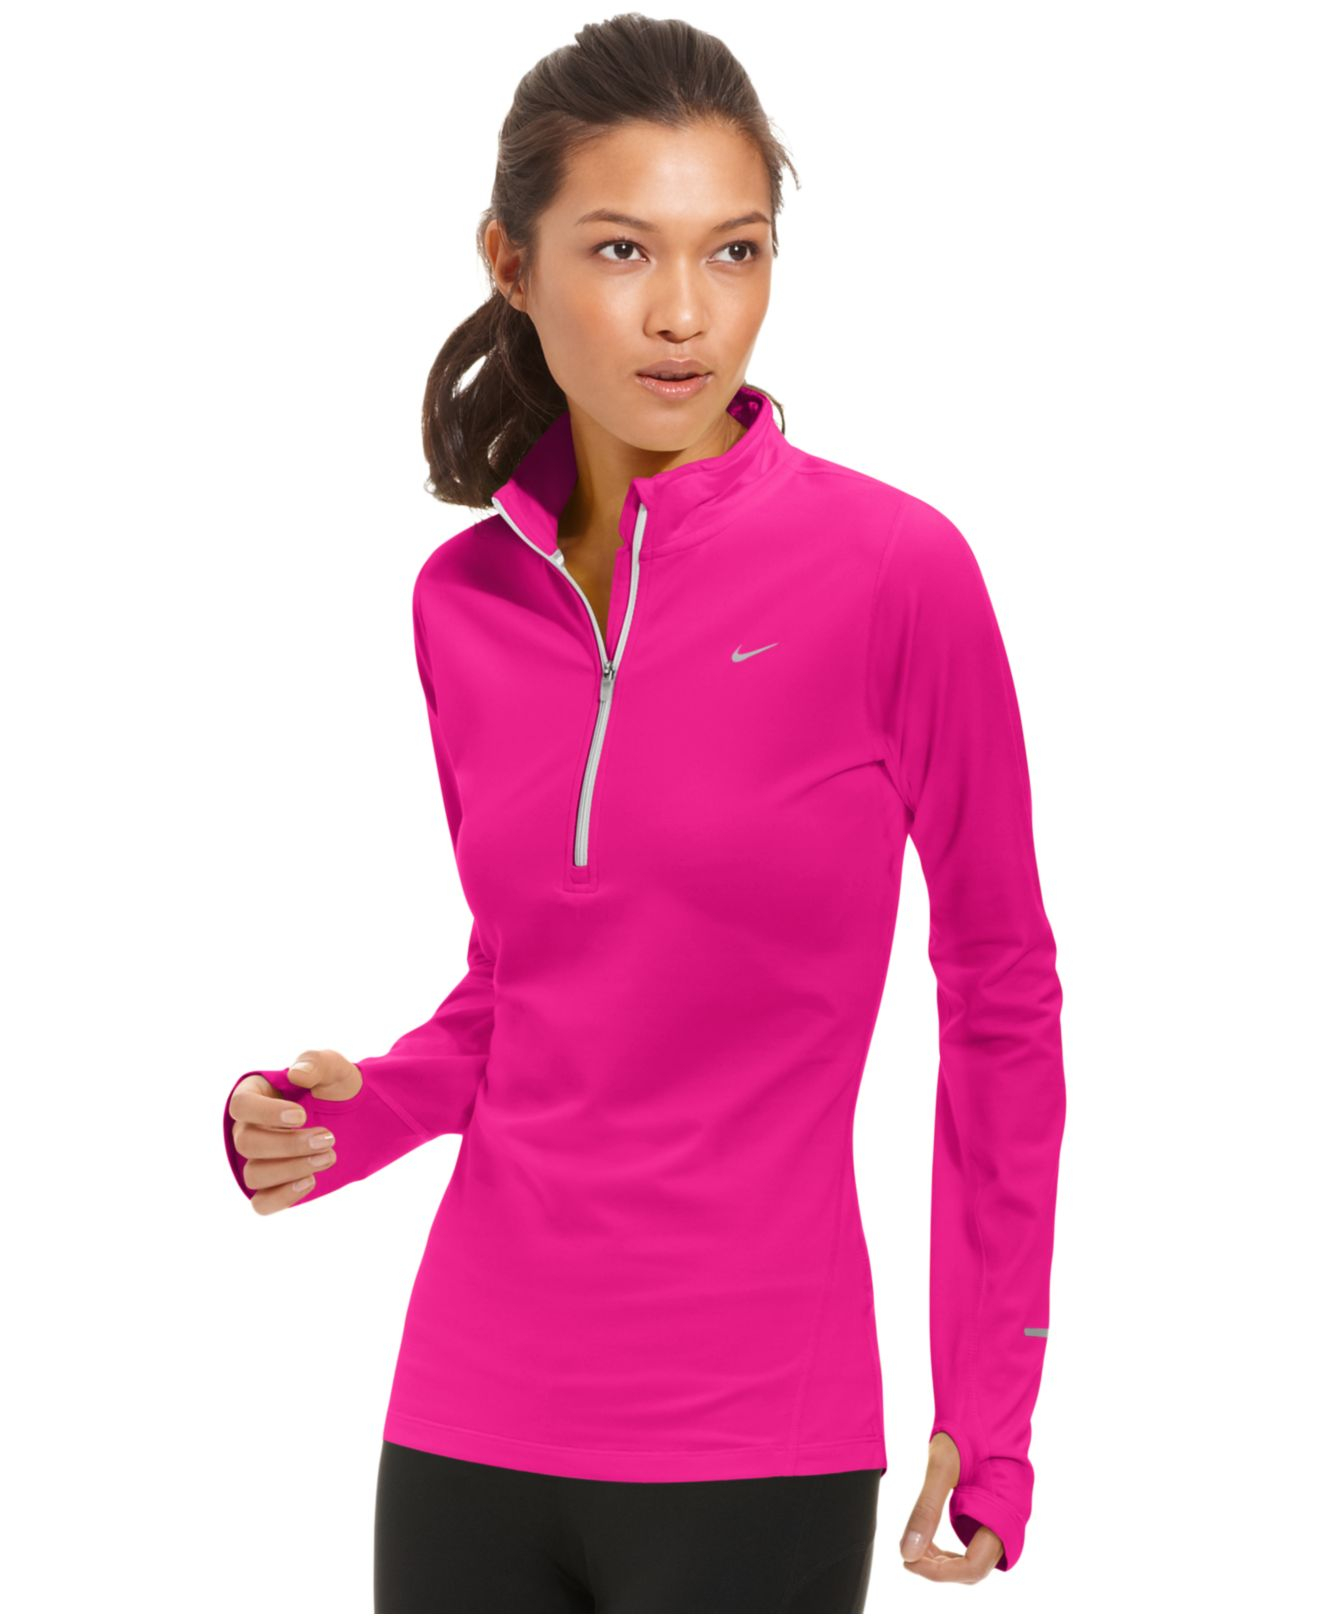 c176d8a9a21d Lyst - Nike Element Dri-fit Half-zip Pullover in Pink